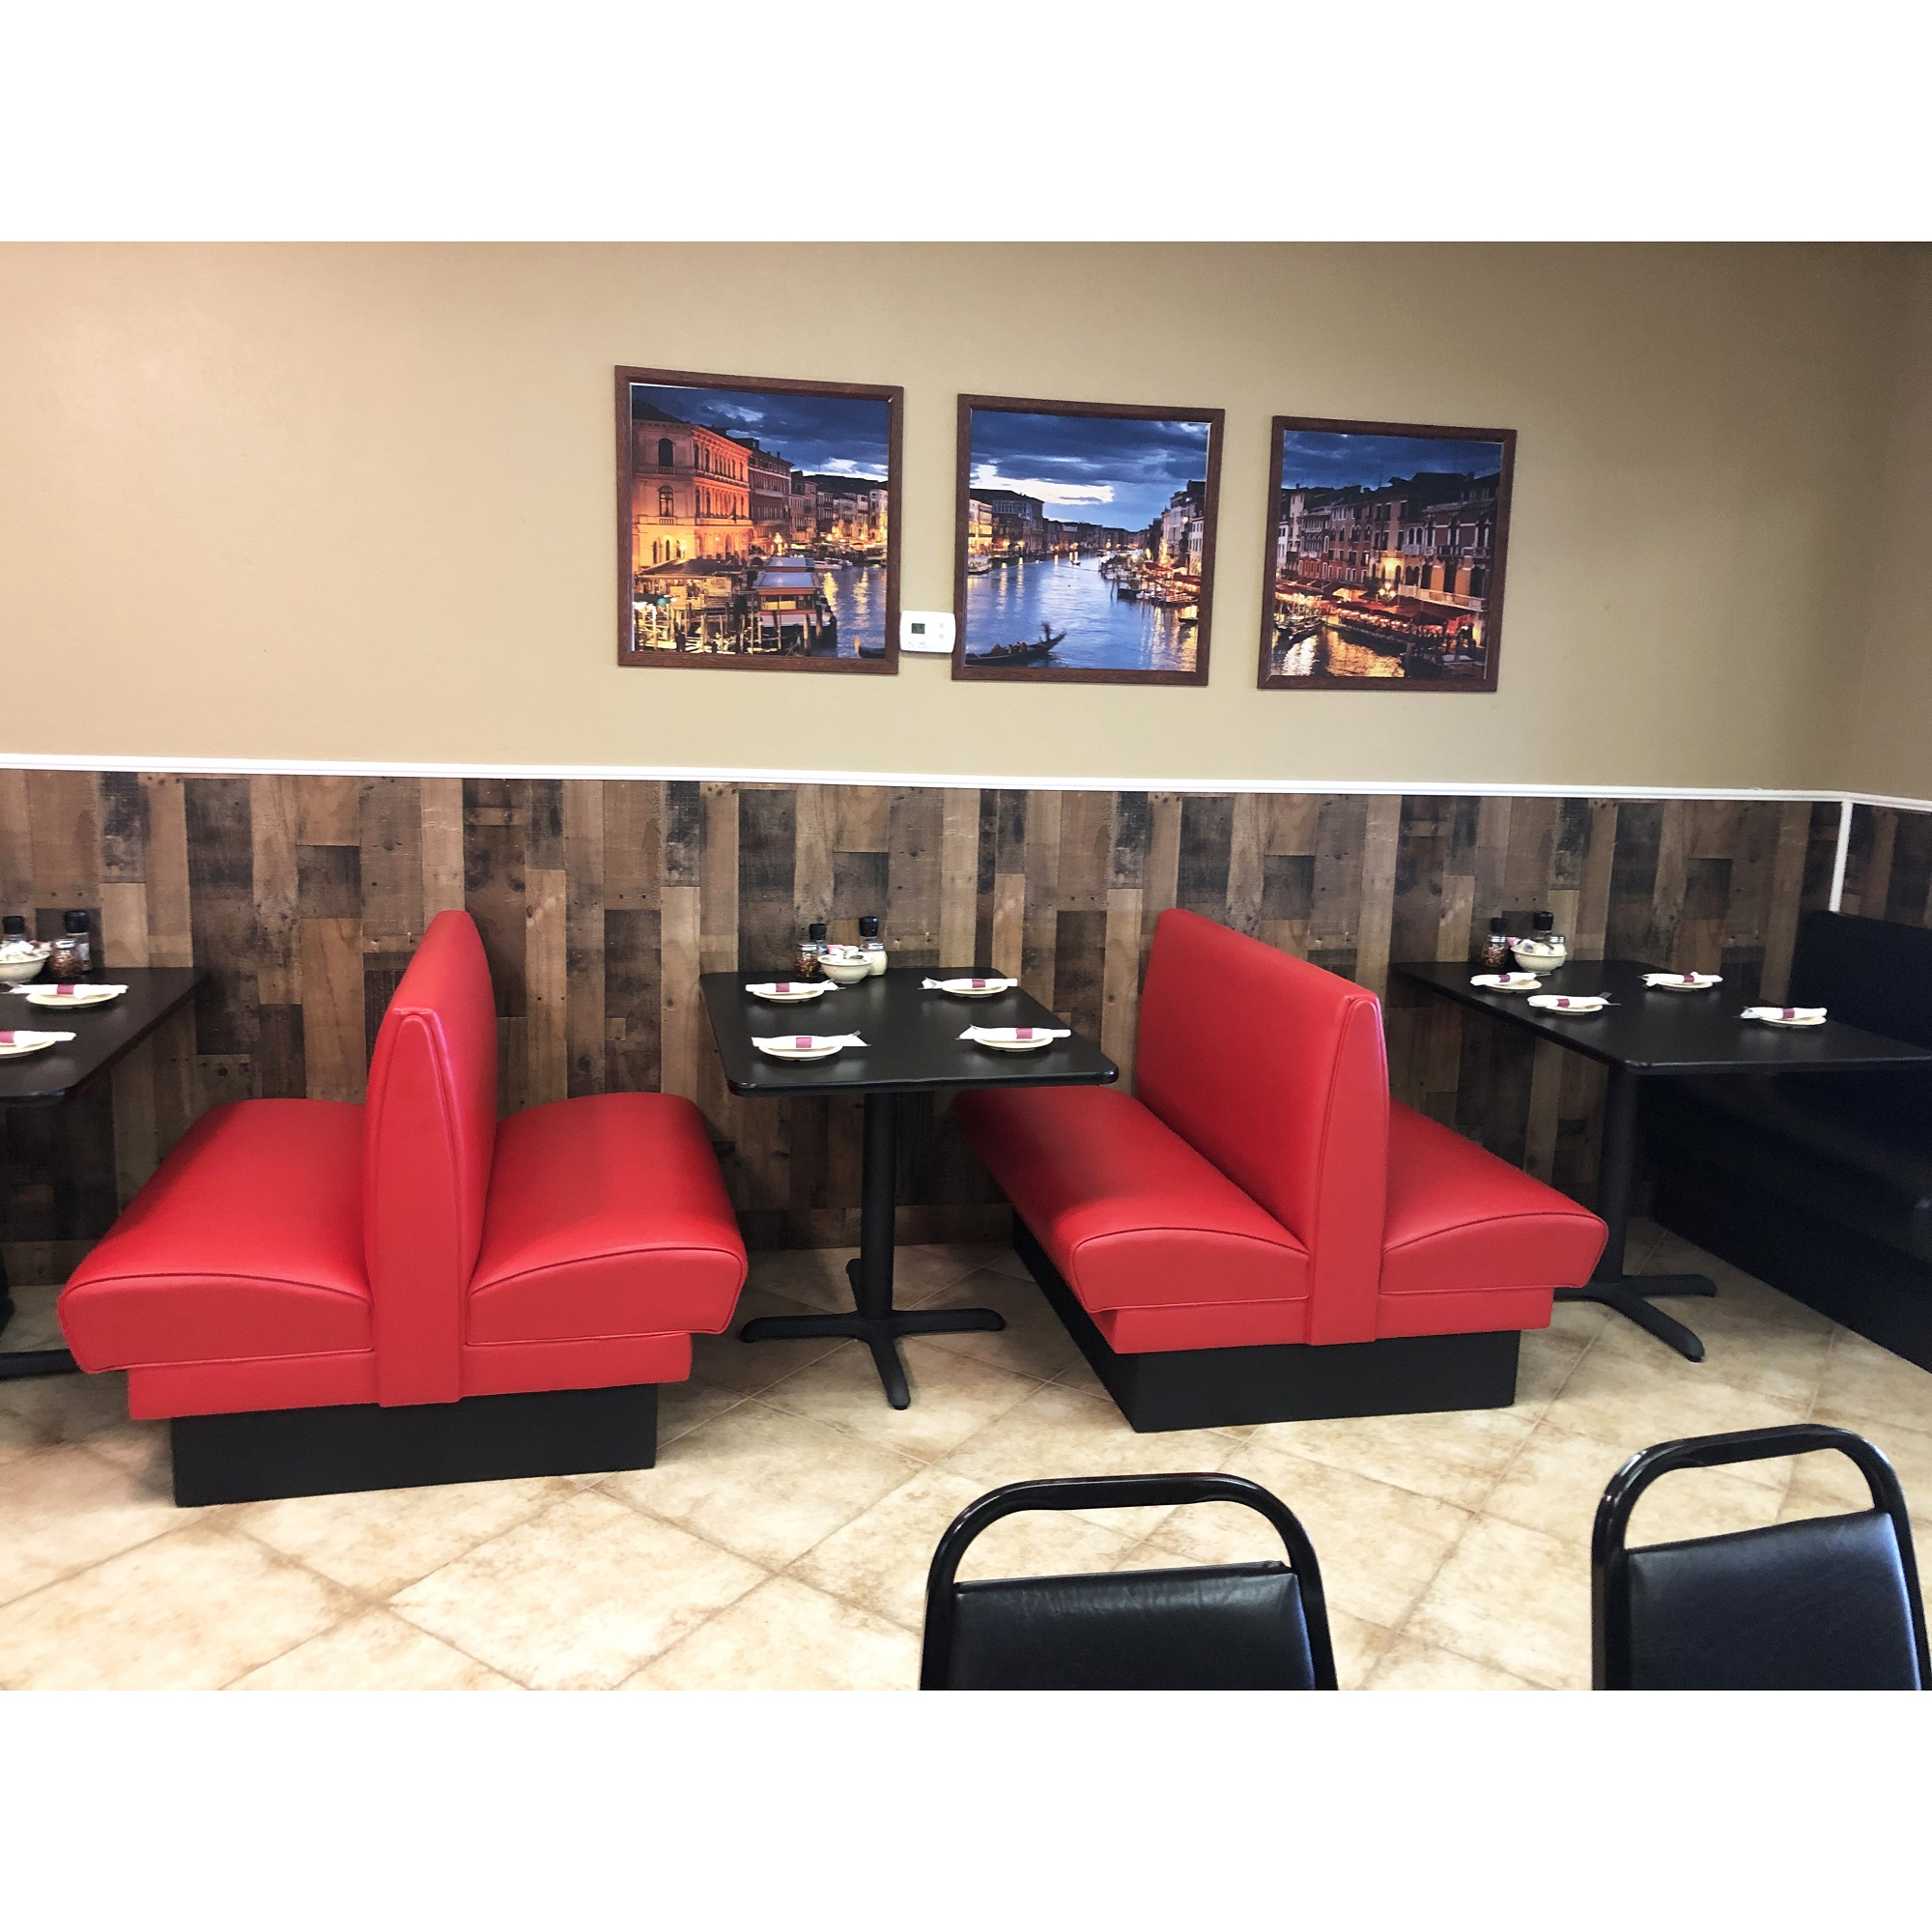 Single double sides restaurant booth and table USA project